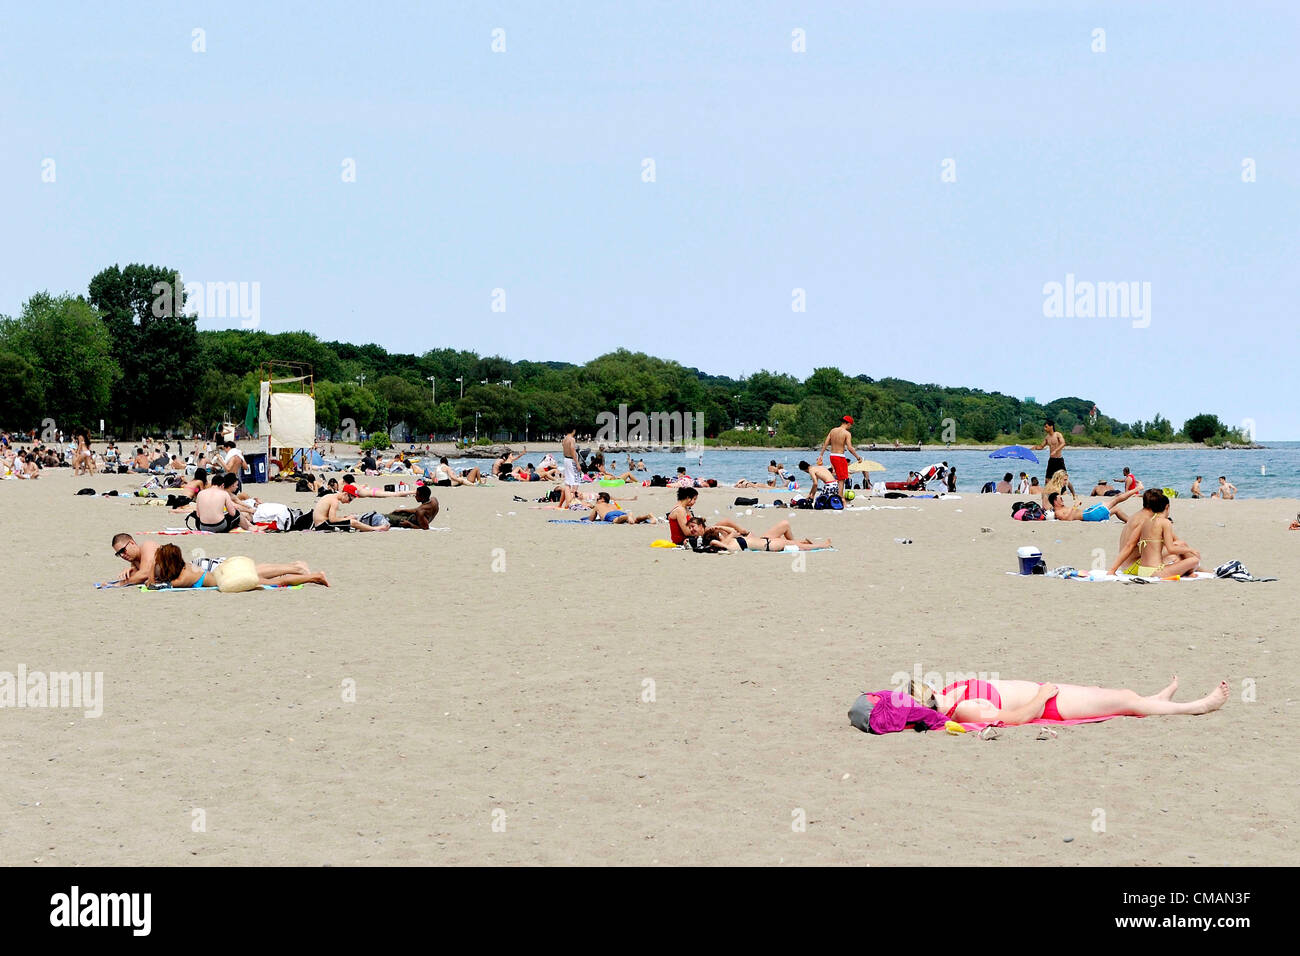 July 5, 2012 - Toronto, Canada - After a record breaking day yesterday in Toronto, beach goers continue to cool - Stock Image